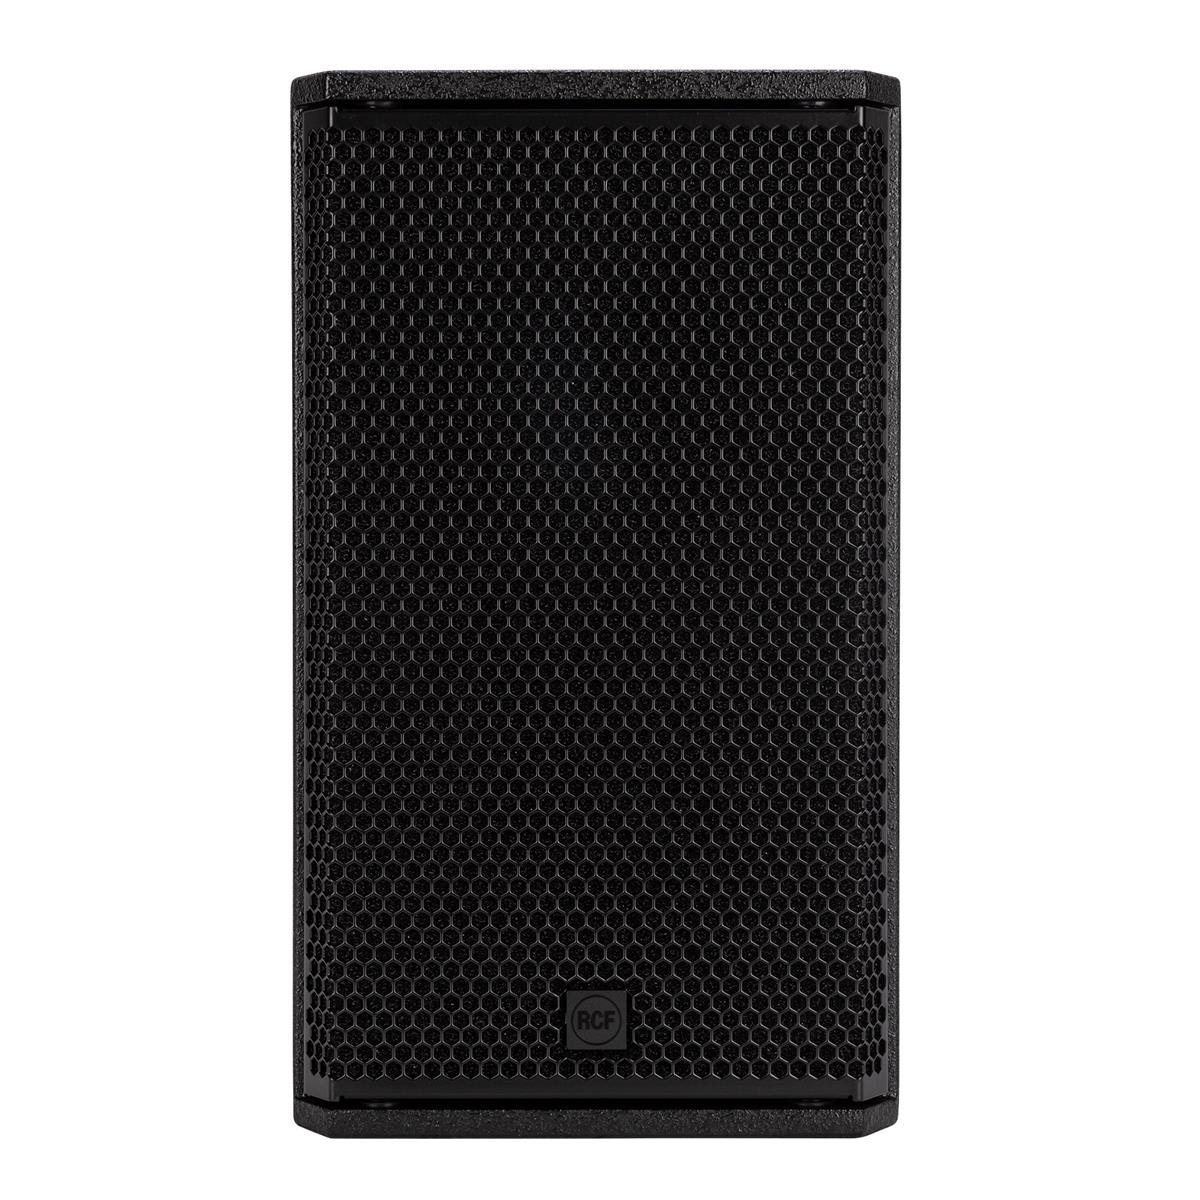 RCF COMPACT M 08 Two-way passive speaker 8in+1in 300W